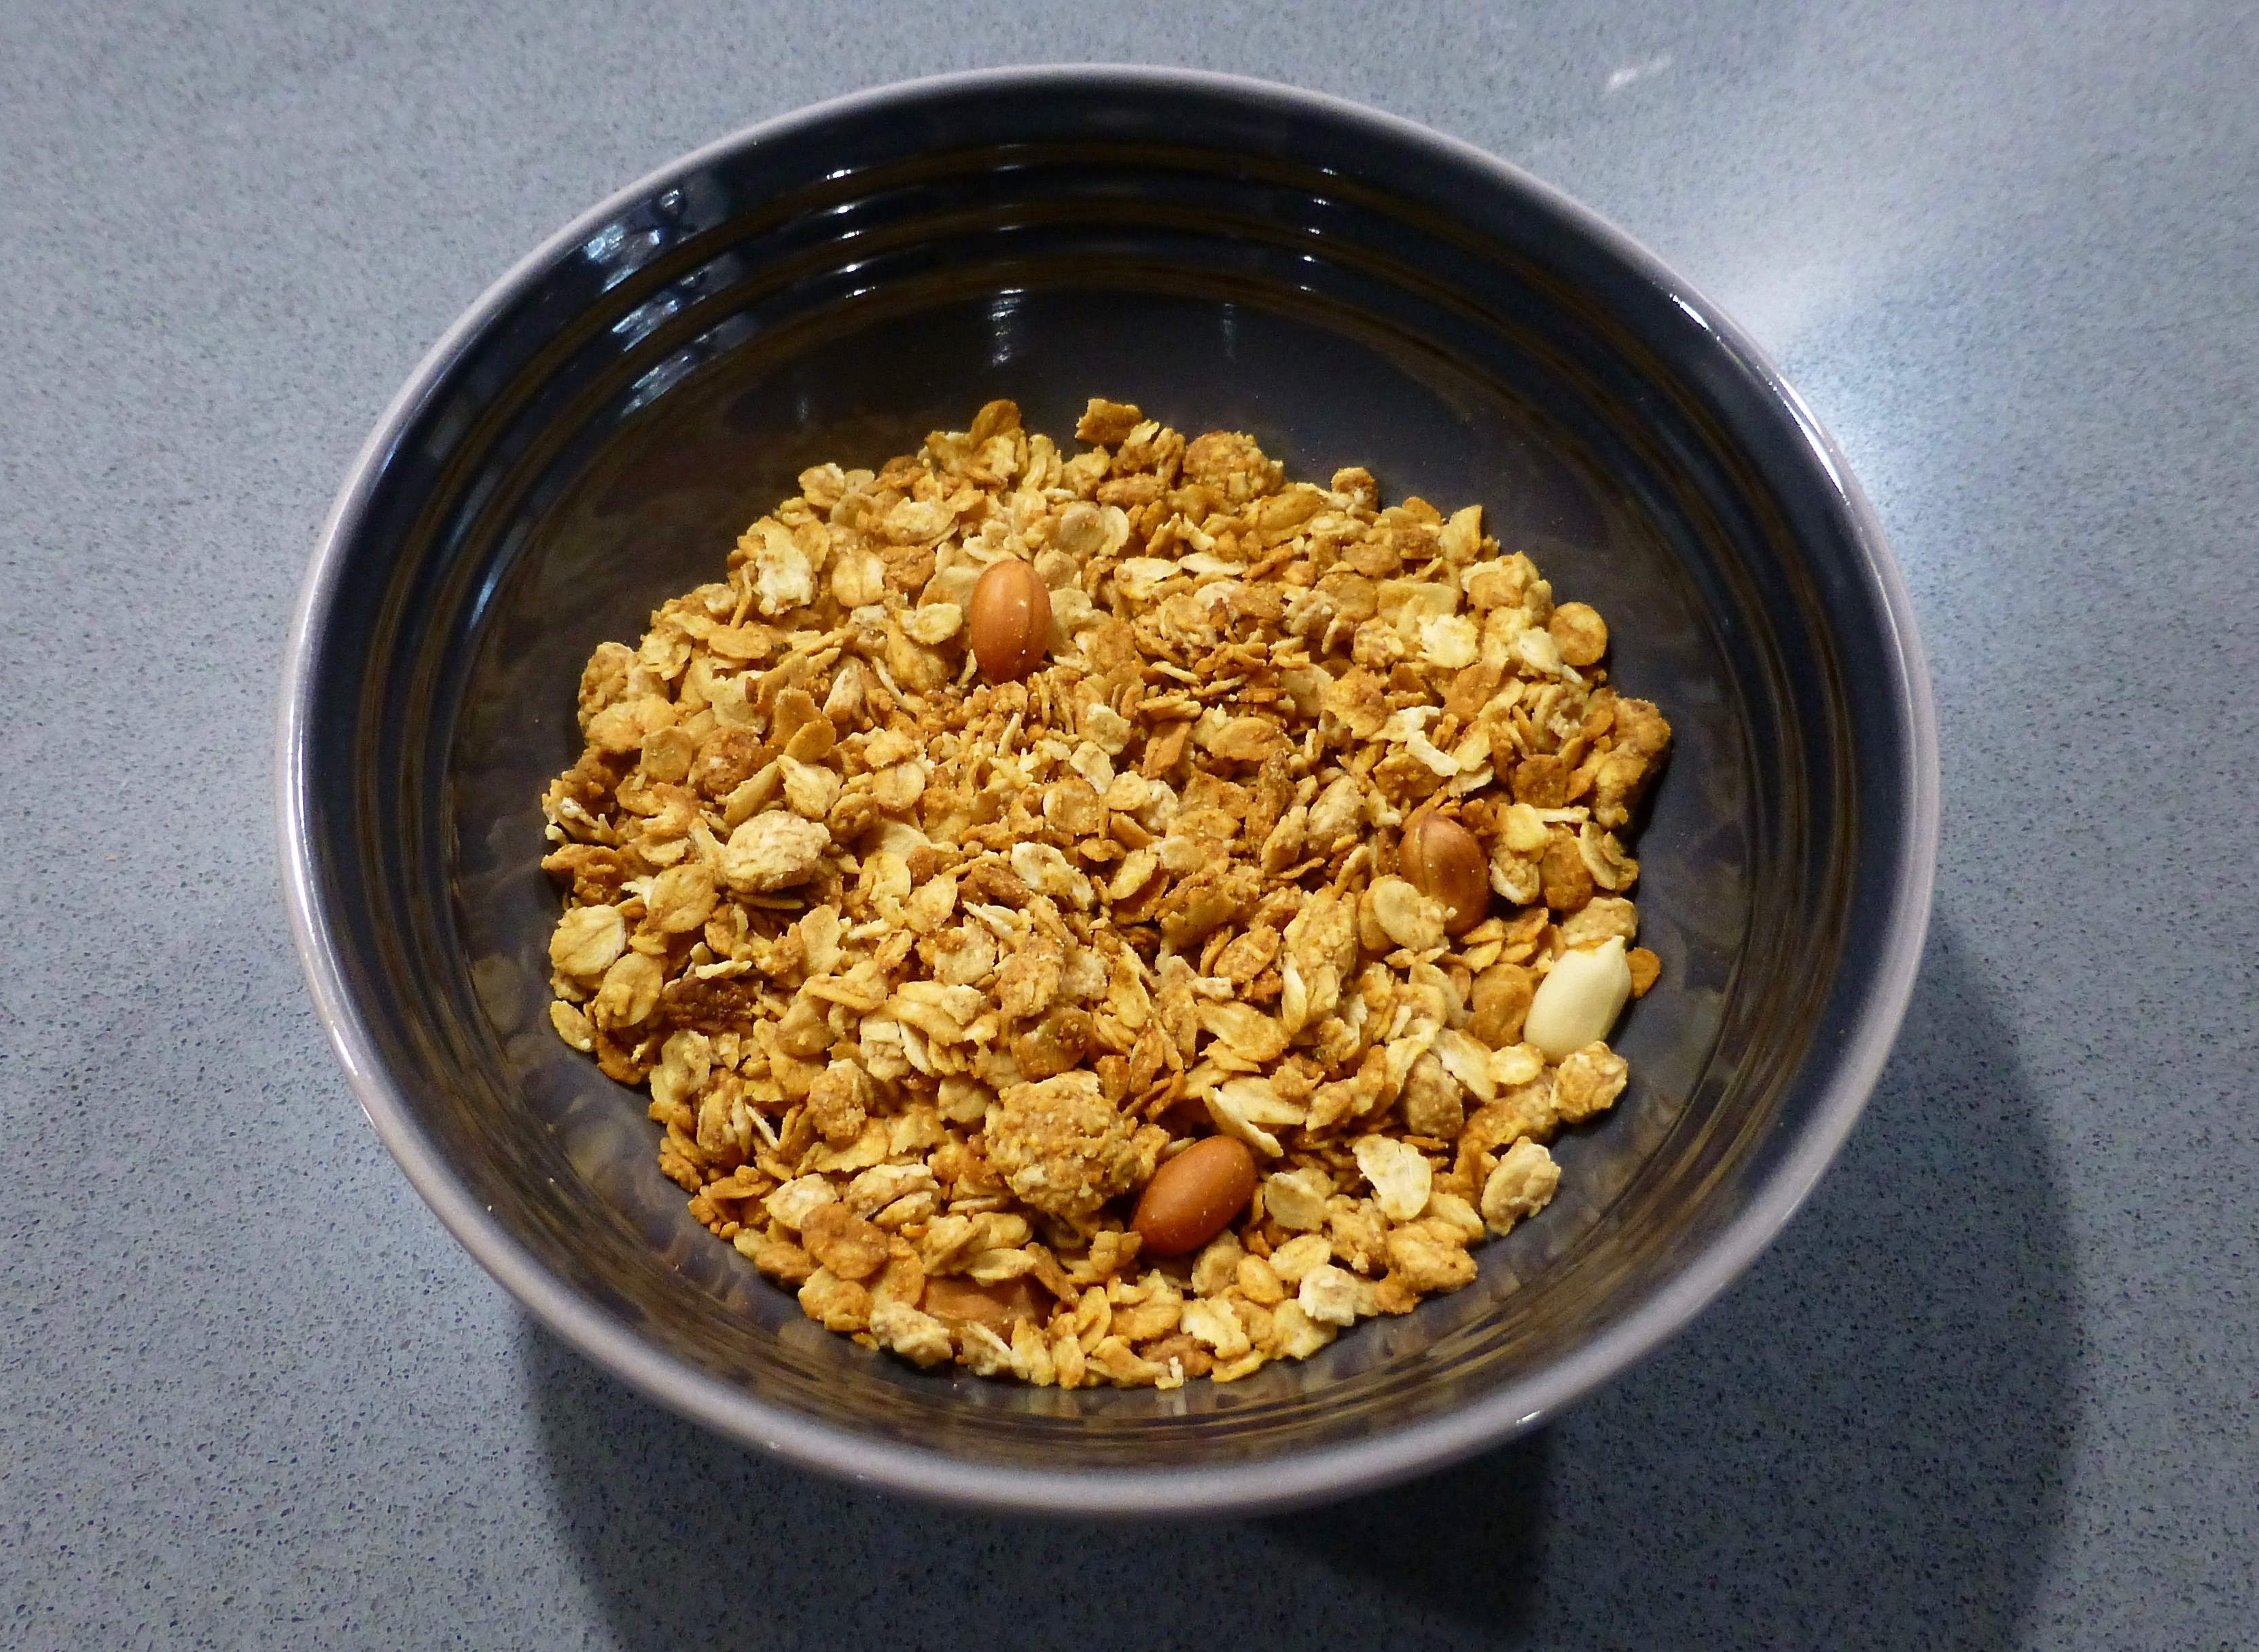 Peanut Butter Me Up Breakfast by Bella Granola.jpg